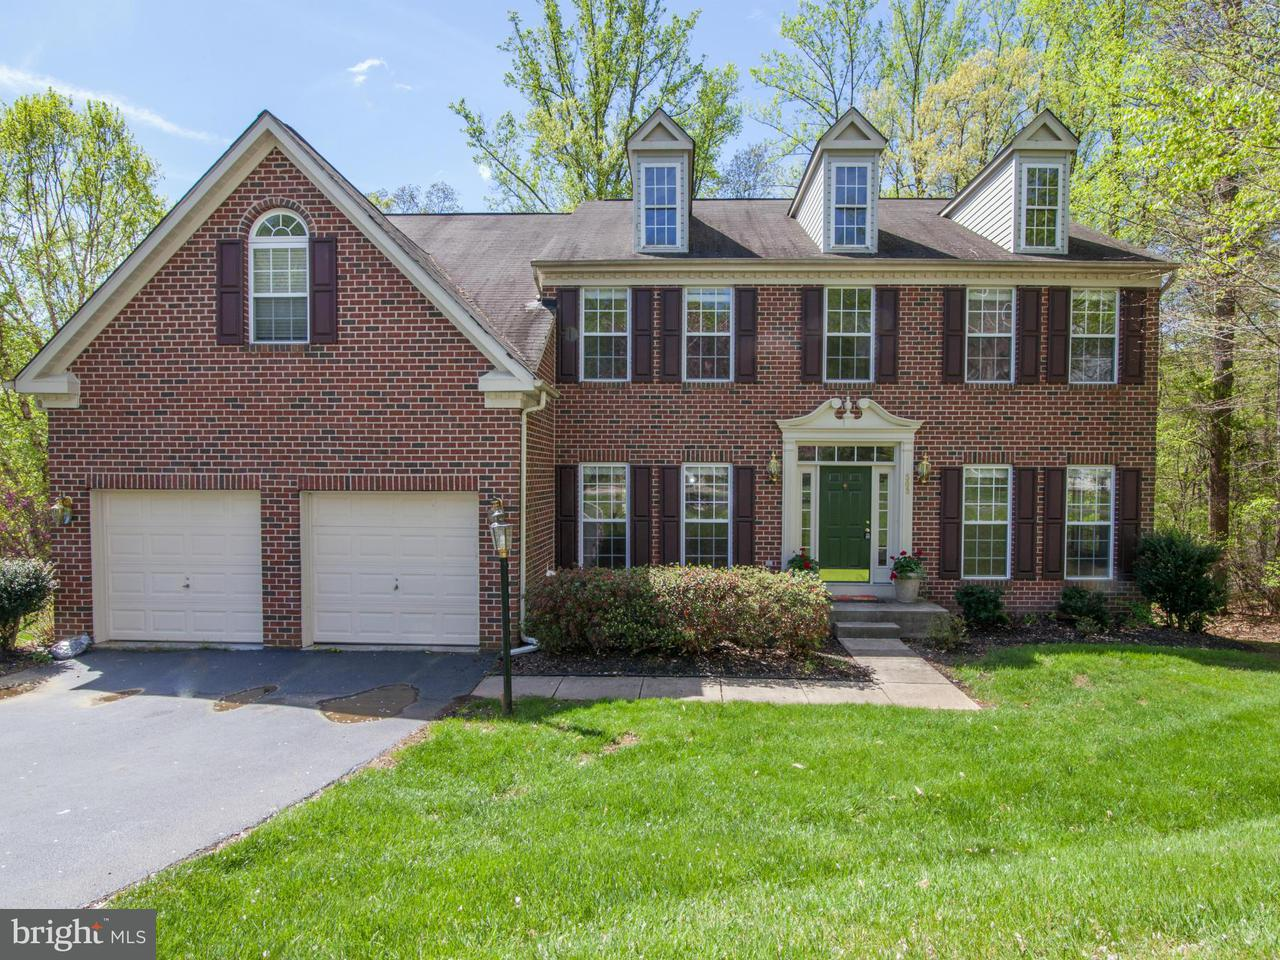 Single Family Home for Sale at 503 CEDAR HILL Court 503 CEDAR HILL Court Bel Air, Maryland 21015 United States